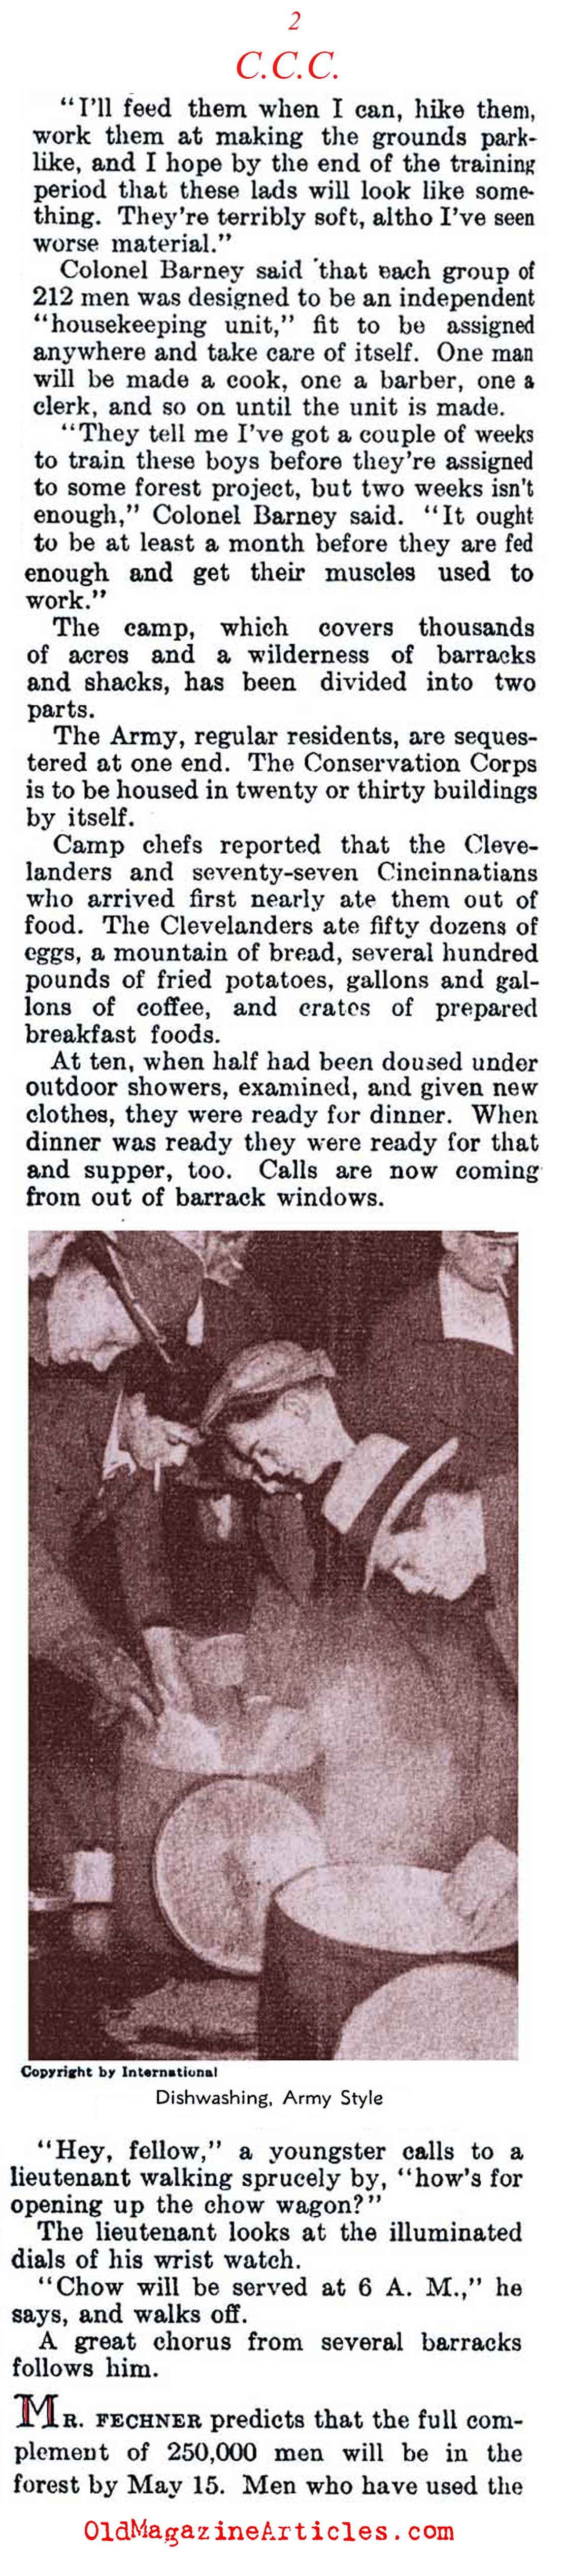 Public Relief for Young Men  (Literary Digest, 1933)